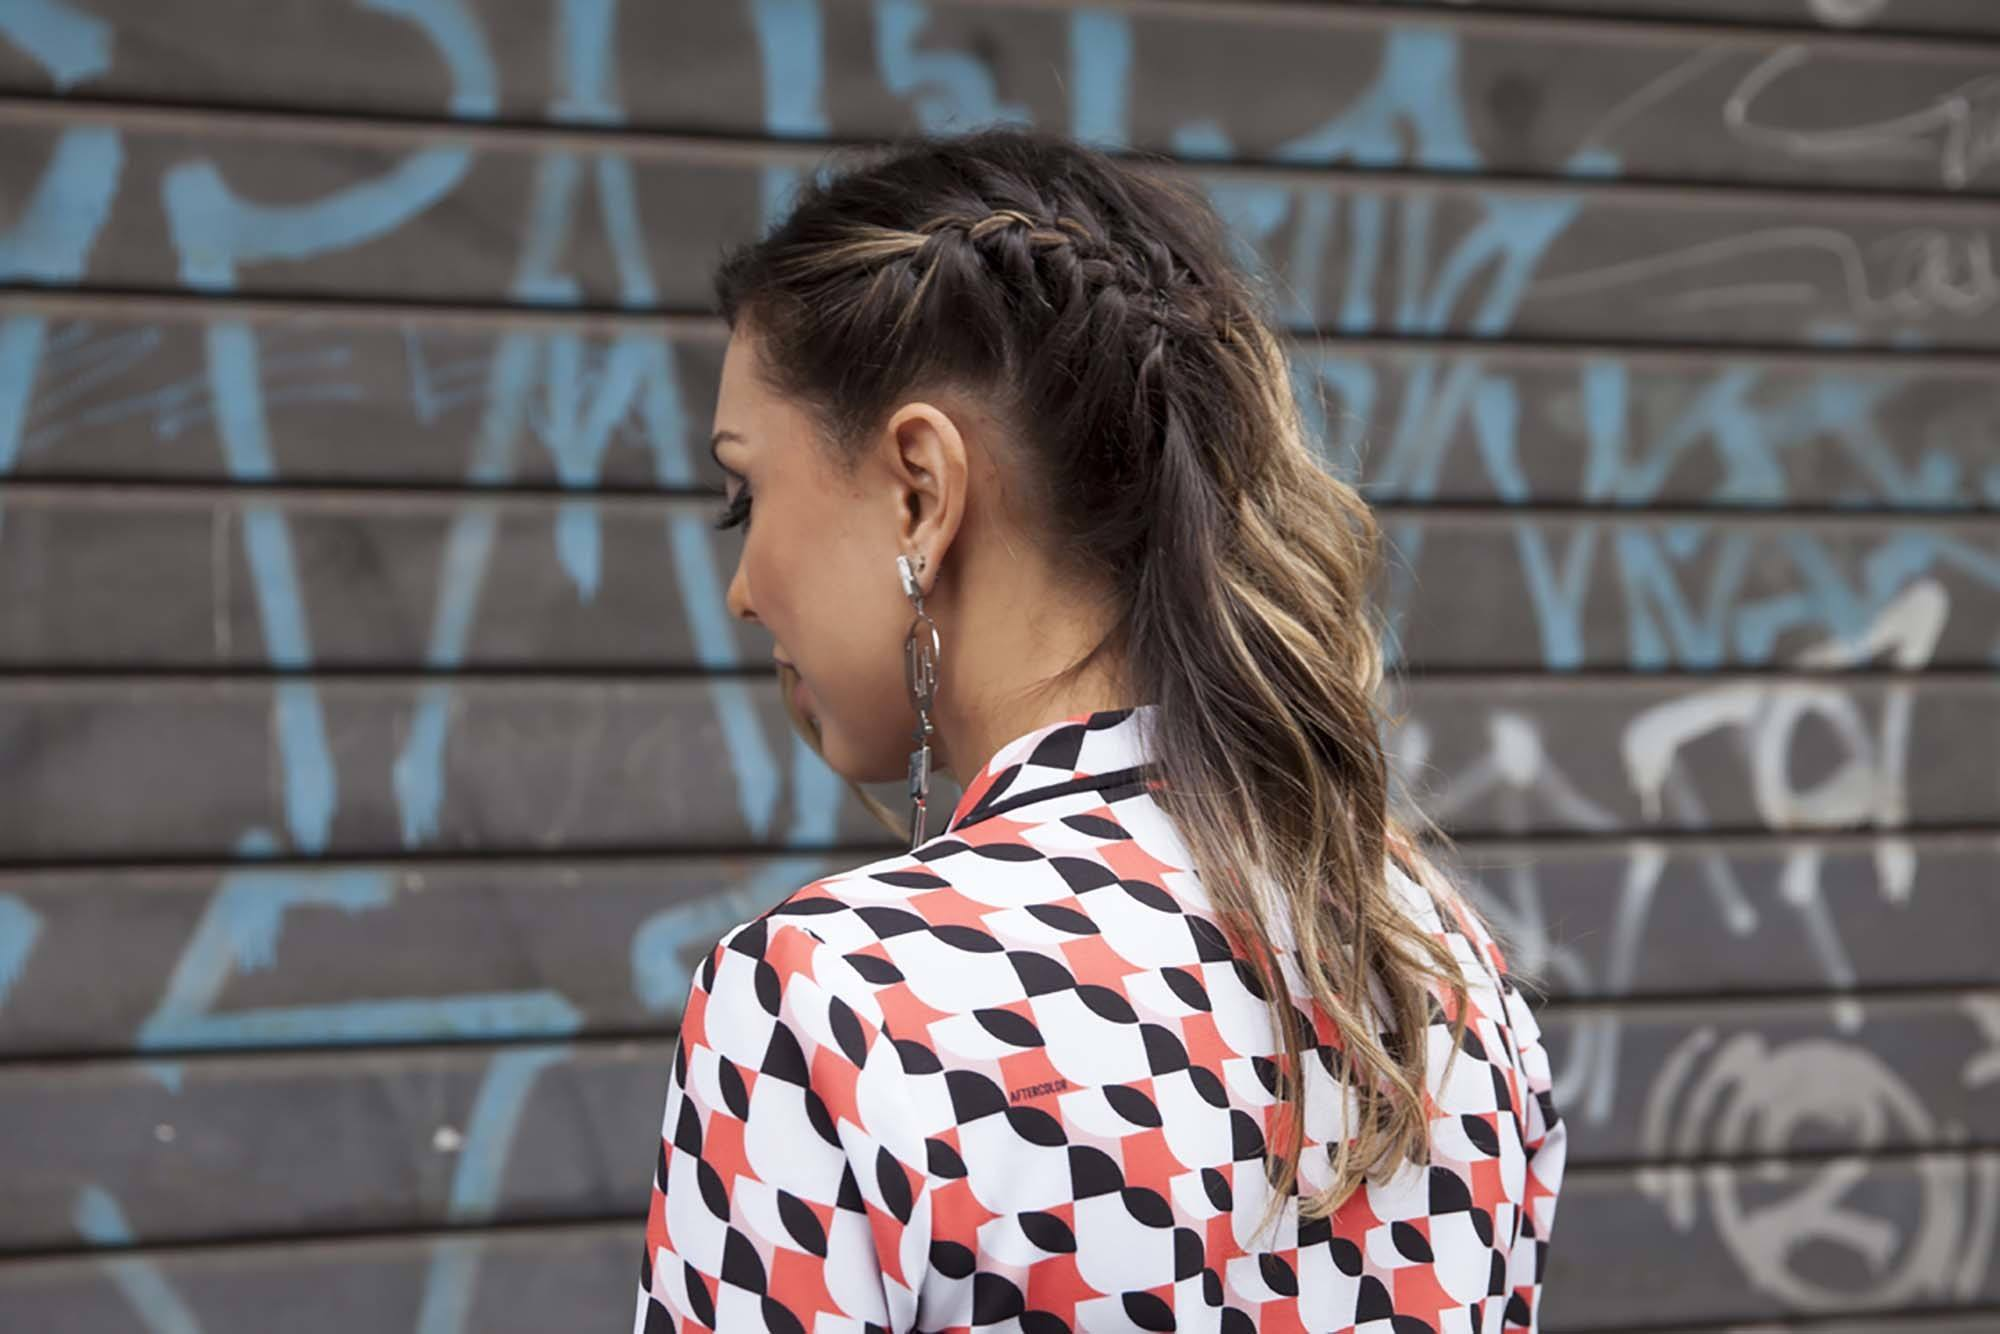 close up street style shot of woman with caramel coloured natural wavy hair with a side braid weaved into it, wearing a printed shirt and posing against a brick wall